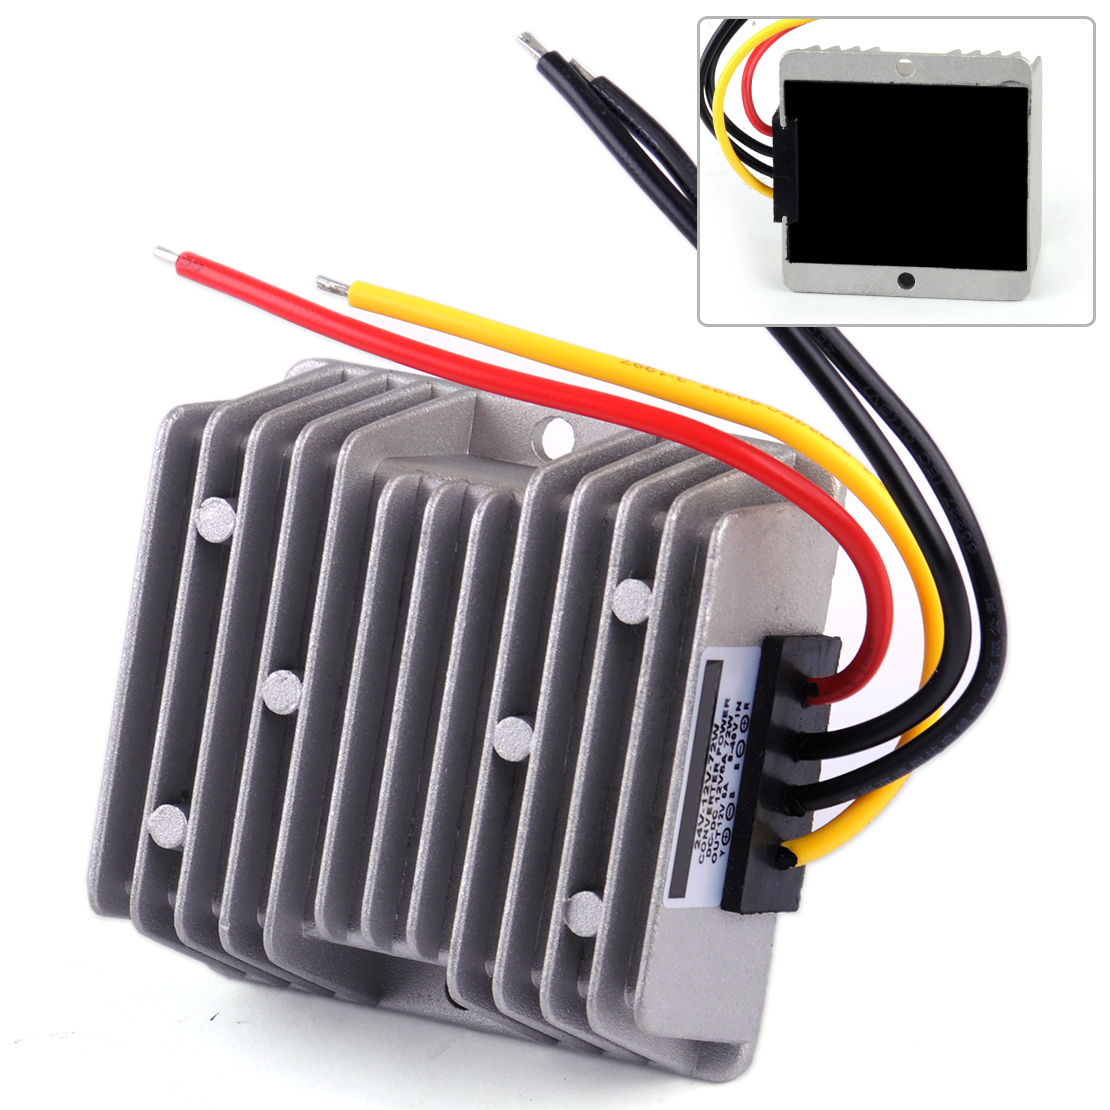 DWCX Universal Waterproof Car Power Automatic DC 8V~40V To 12V Voltage Stabilizer Regulator 6A 72W Step-down Supply Converter